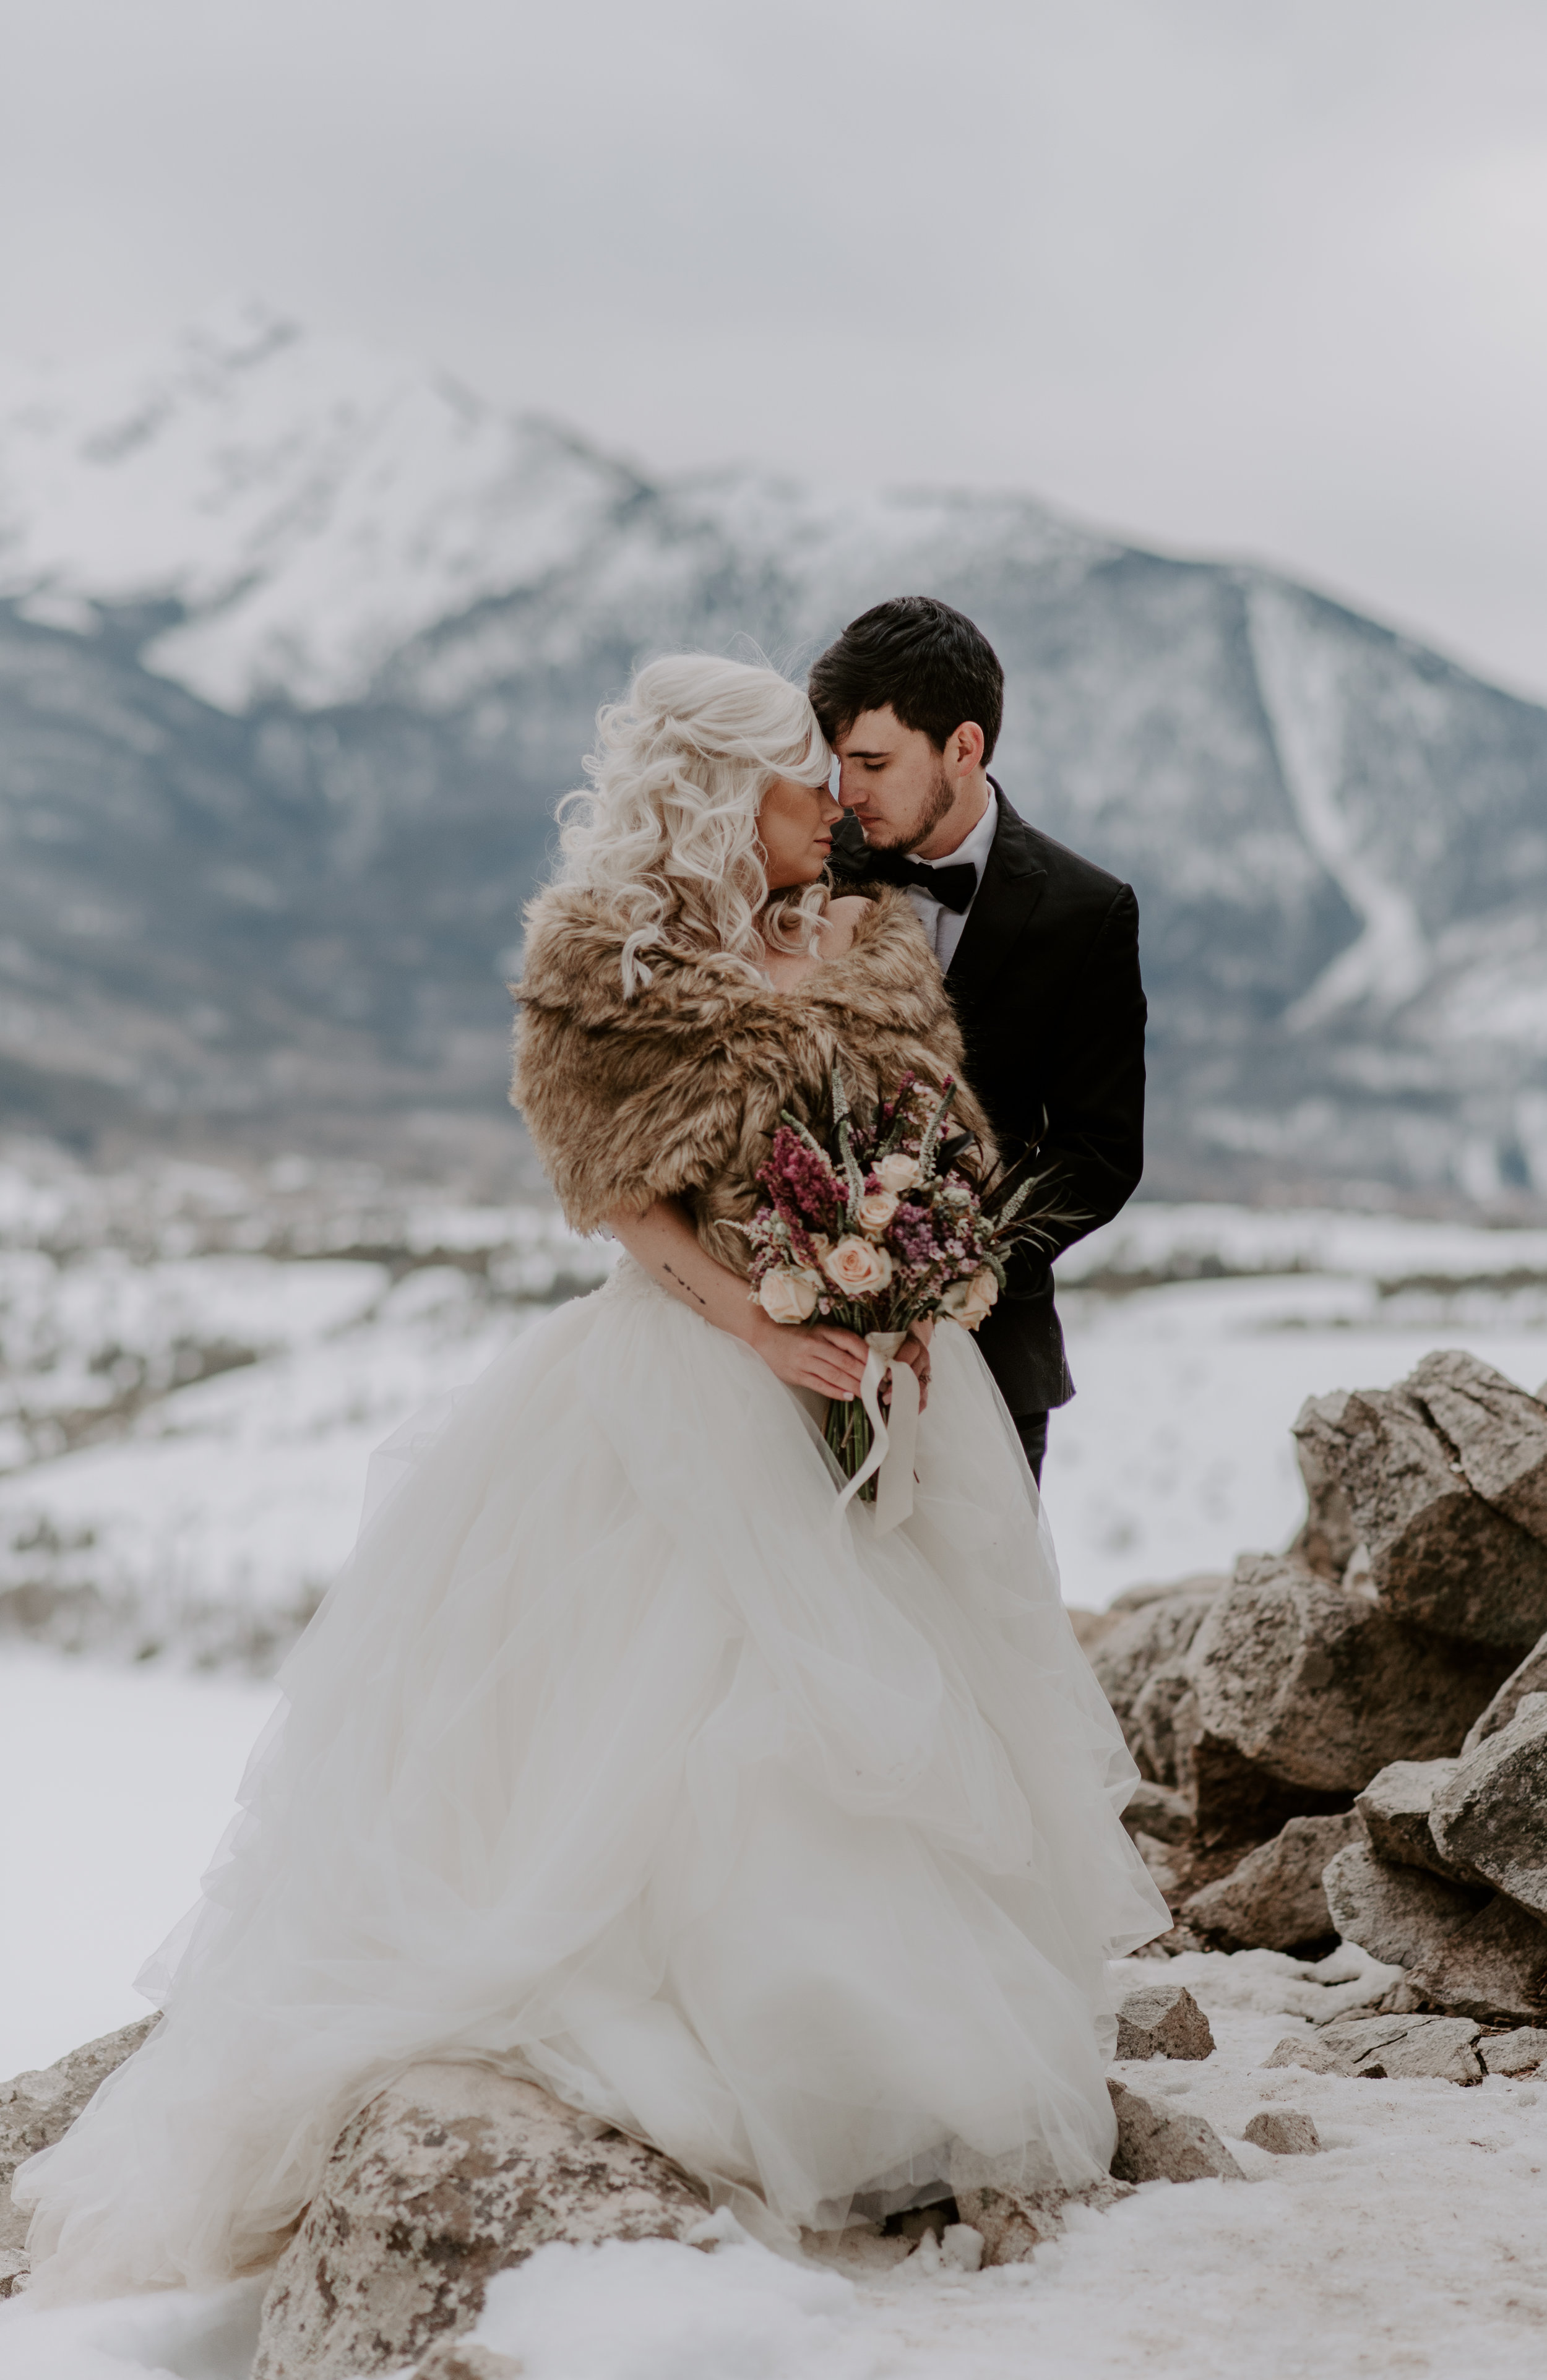 Magical Sapphire Point elopement in the Colorado mountains.